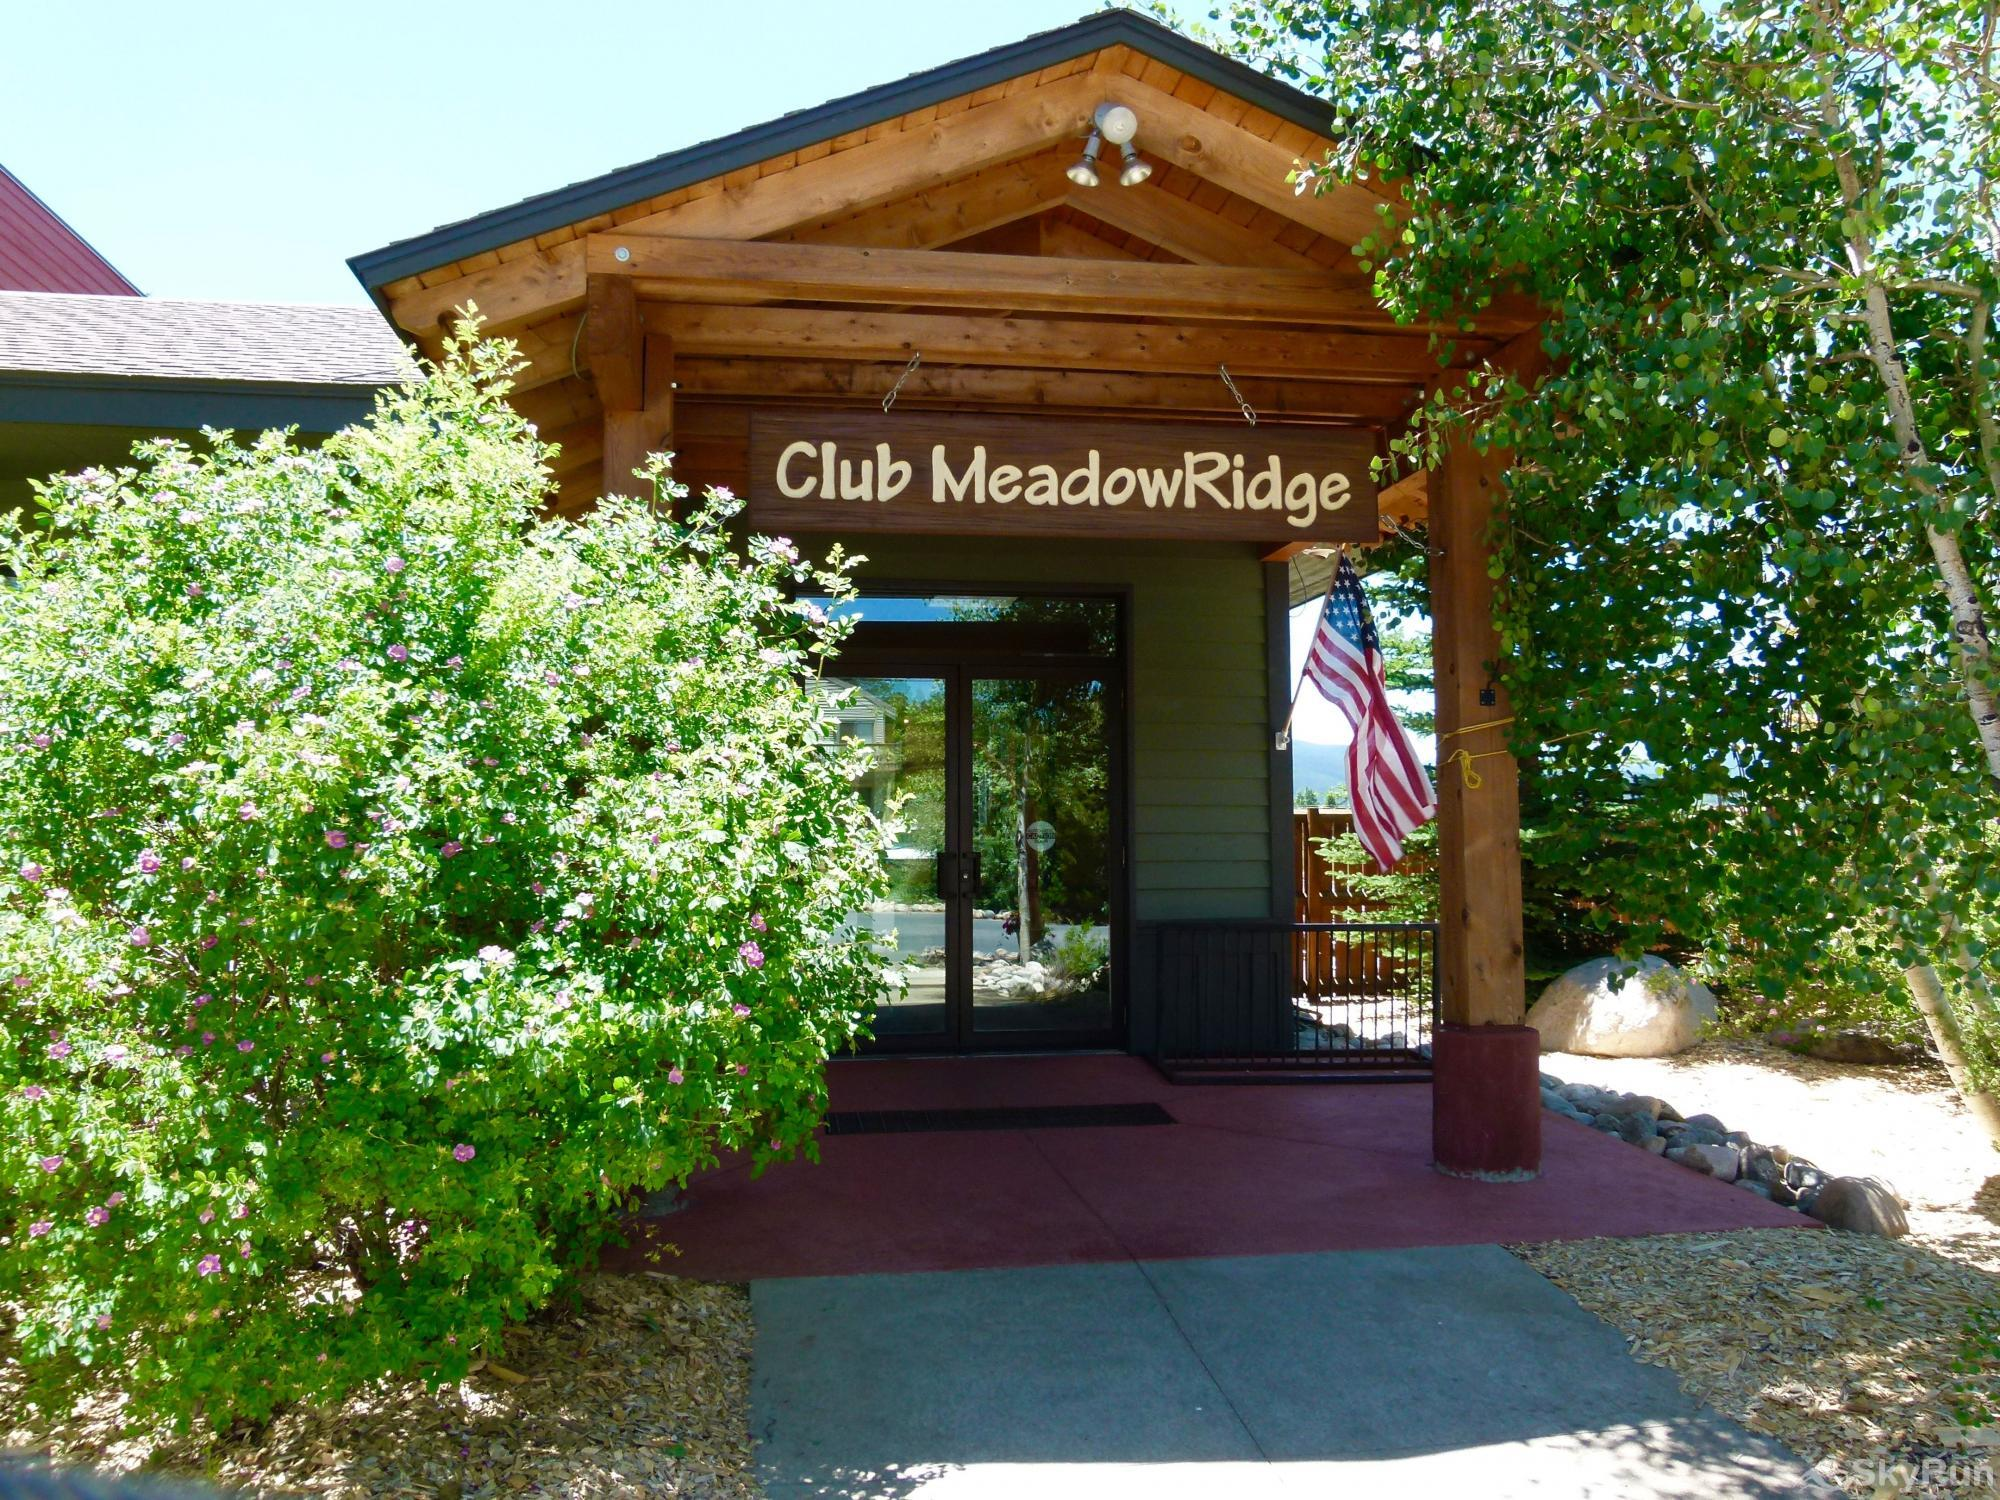 Meadow Ridge Court 12 Unit 12 Clubhouse Entry